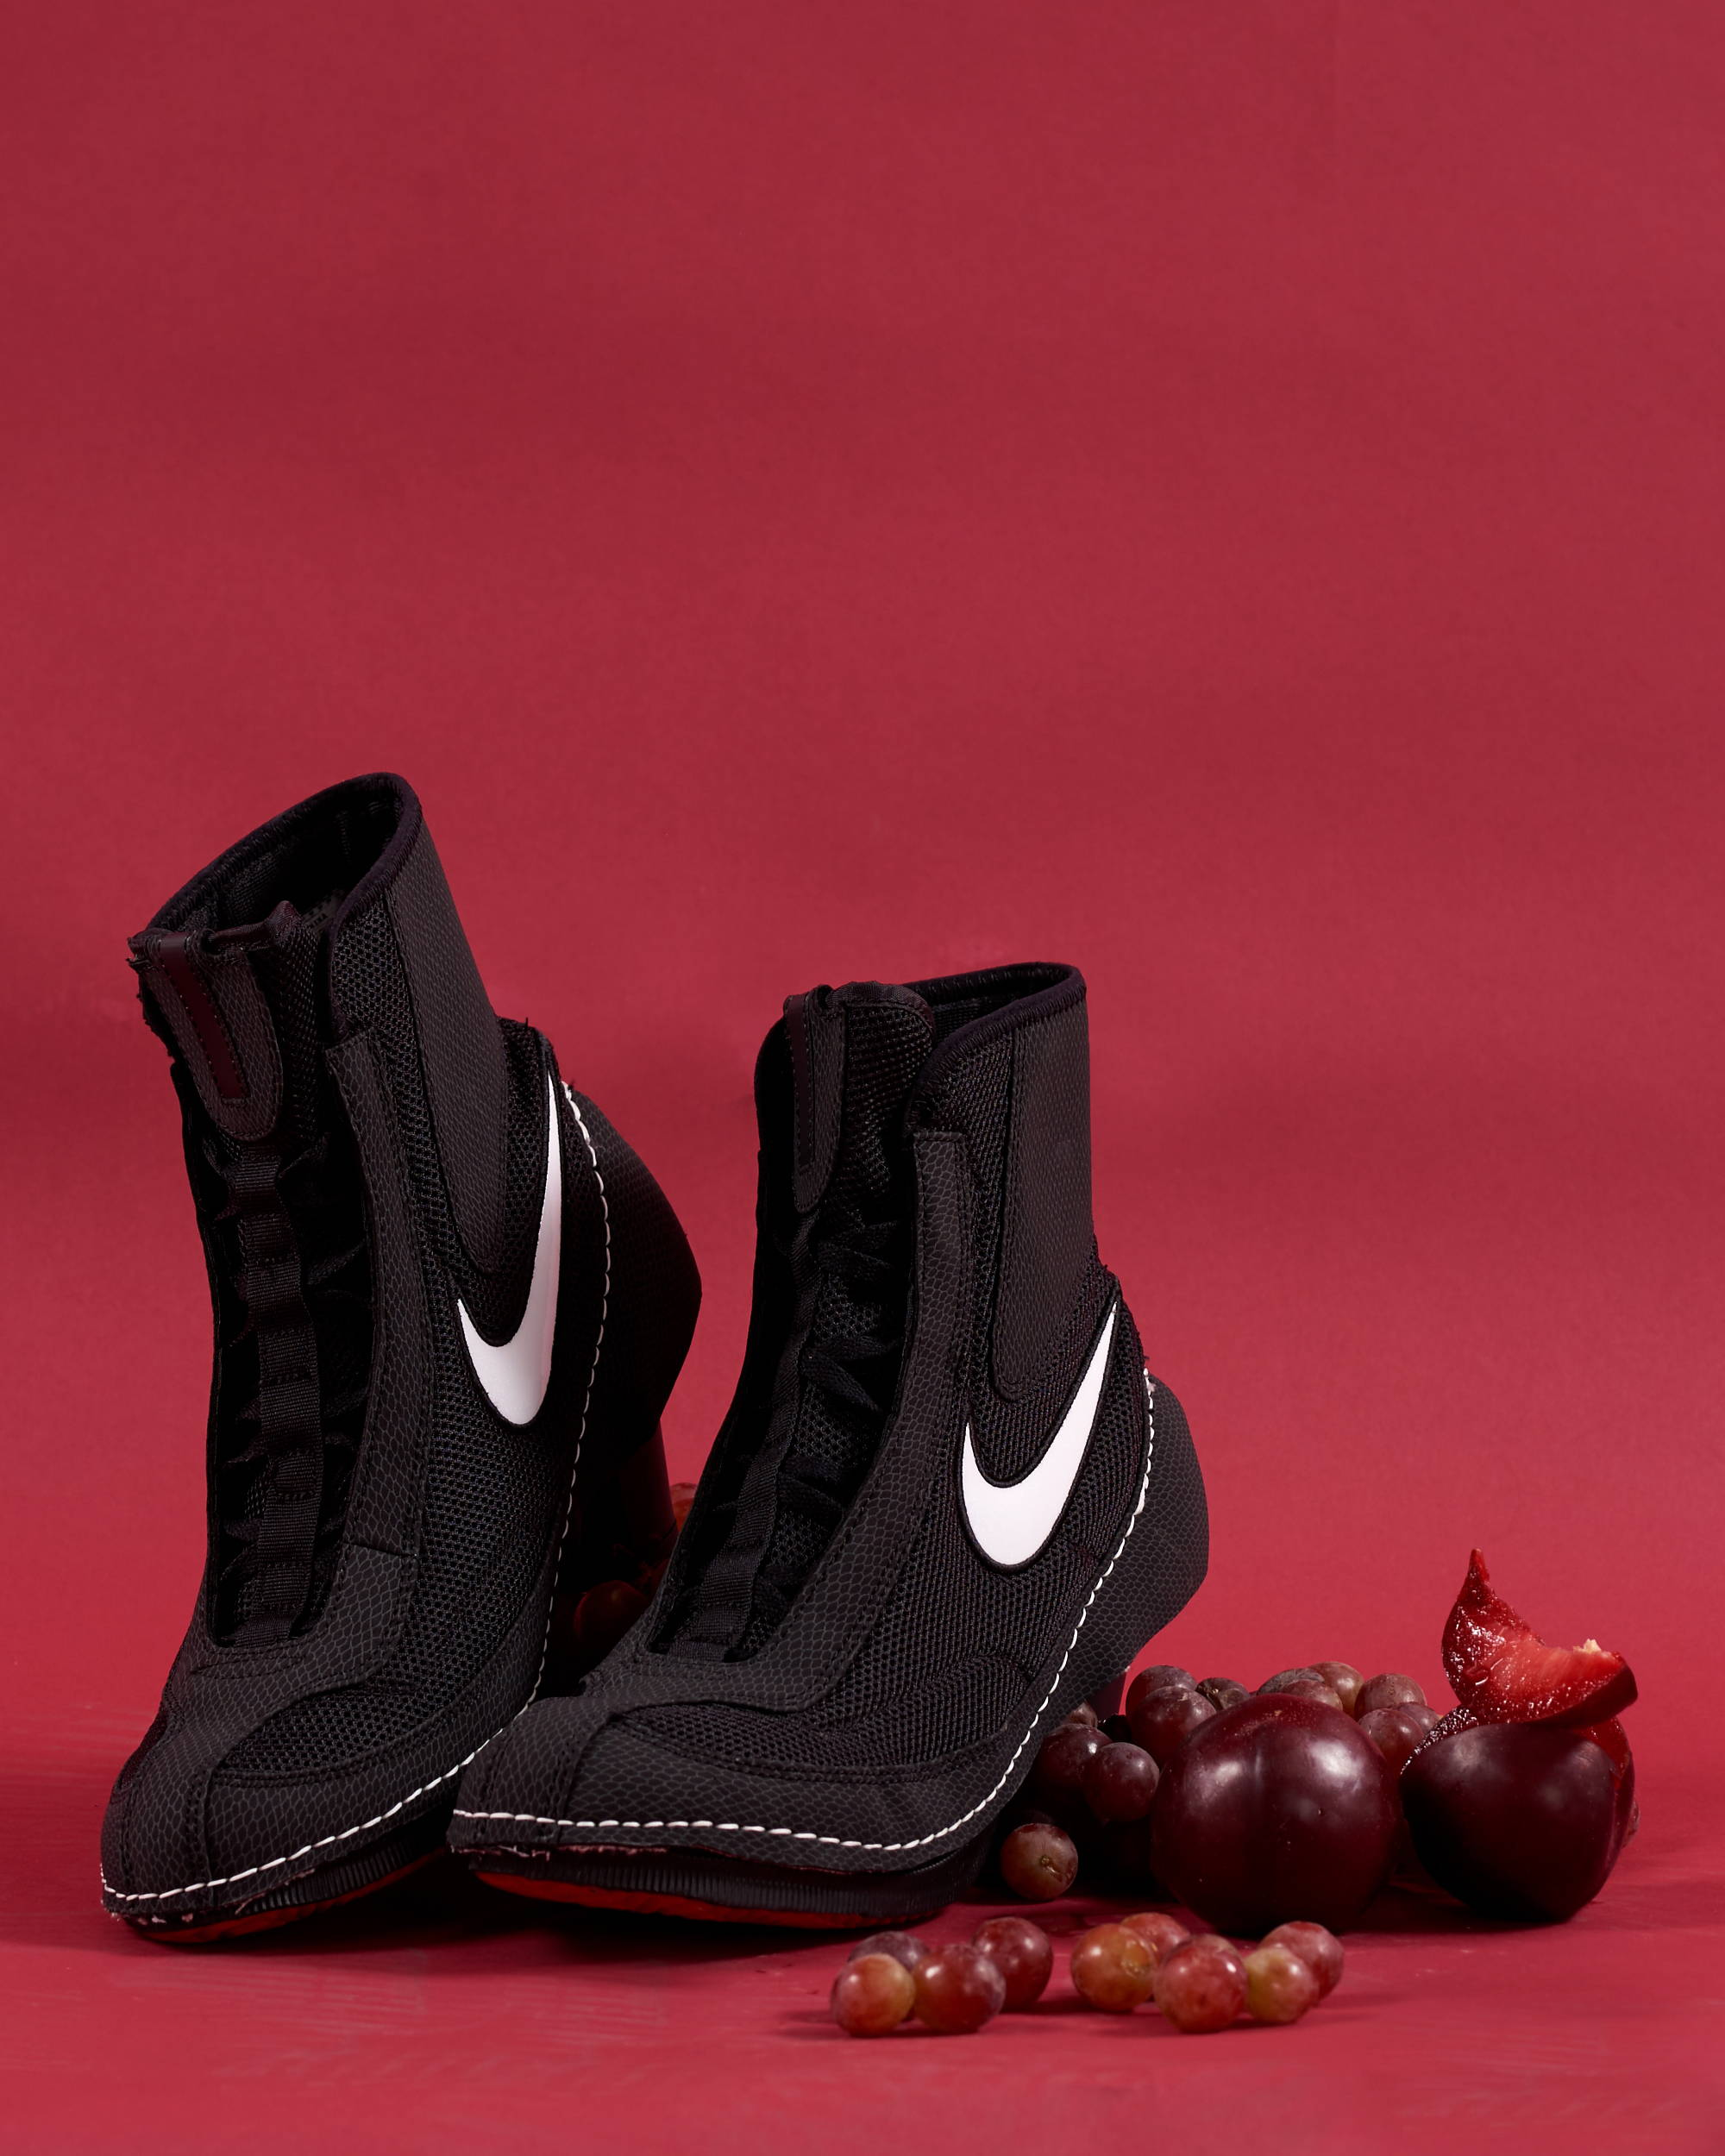 Comme des Garcons x Nike Machomai boxing boot black collaboration - Hlorenzo